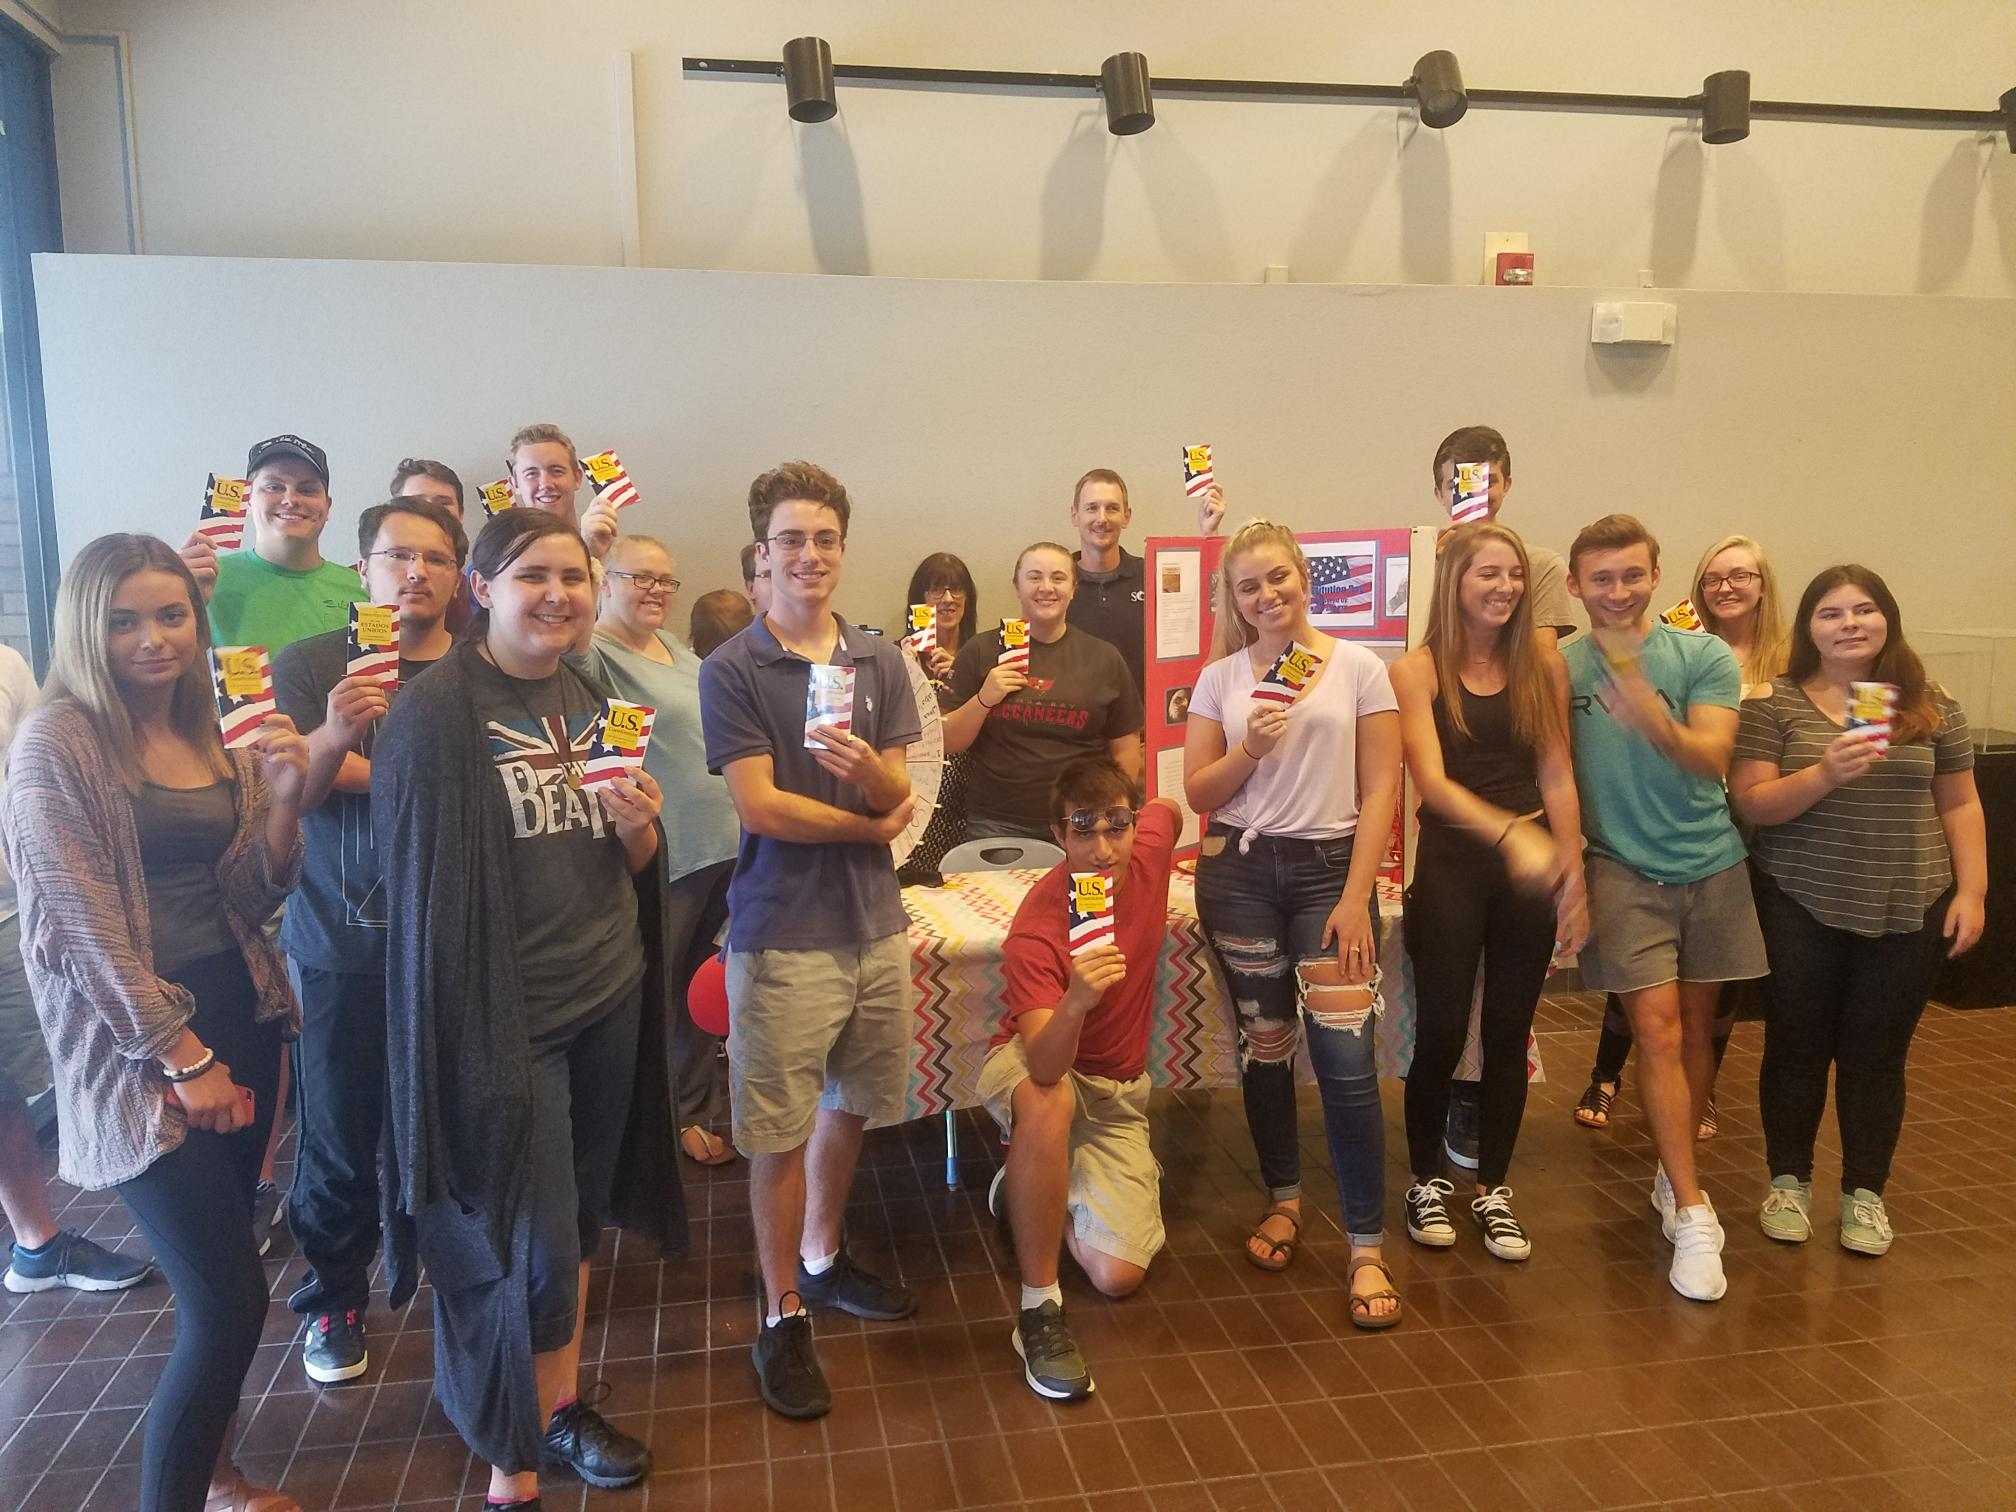 The History and Political Science Club at SCF Venice handed out pocket U.S. Constitutions.